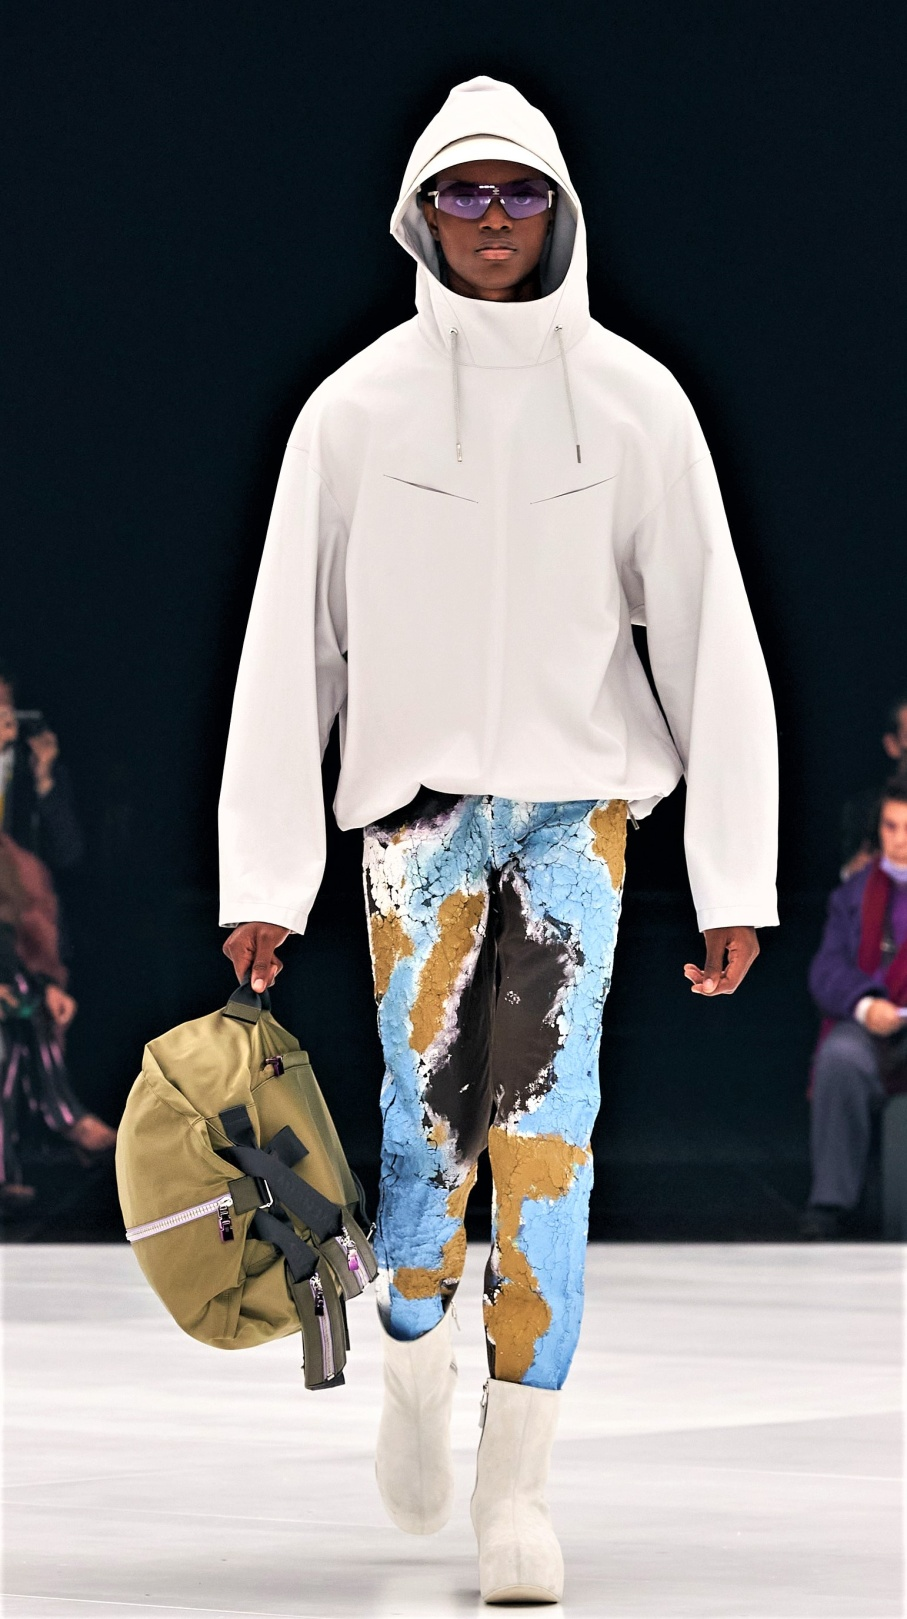 Paris 2. givenchy mens wht anorack vog cropped.jpg